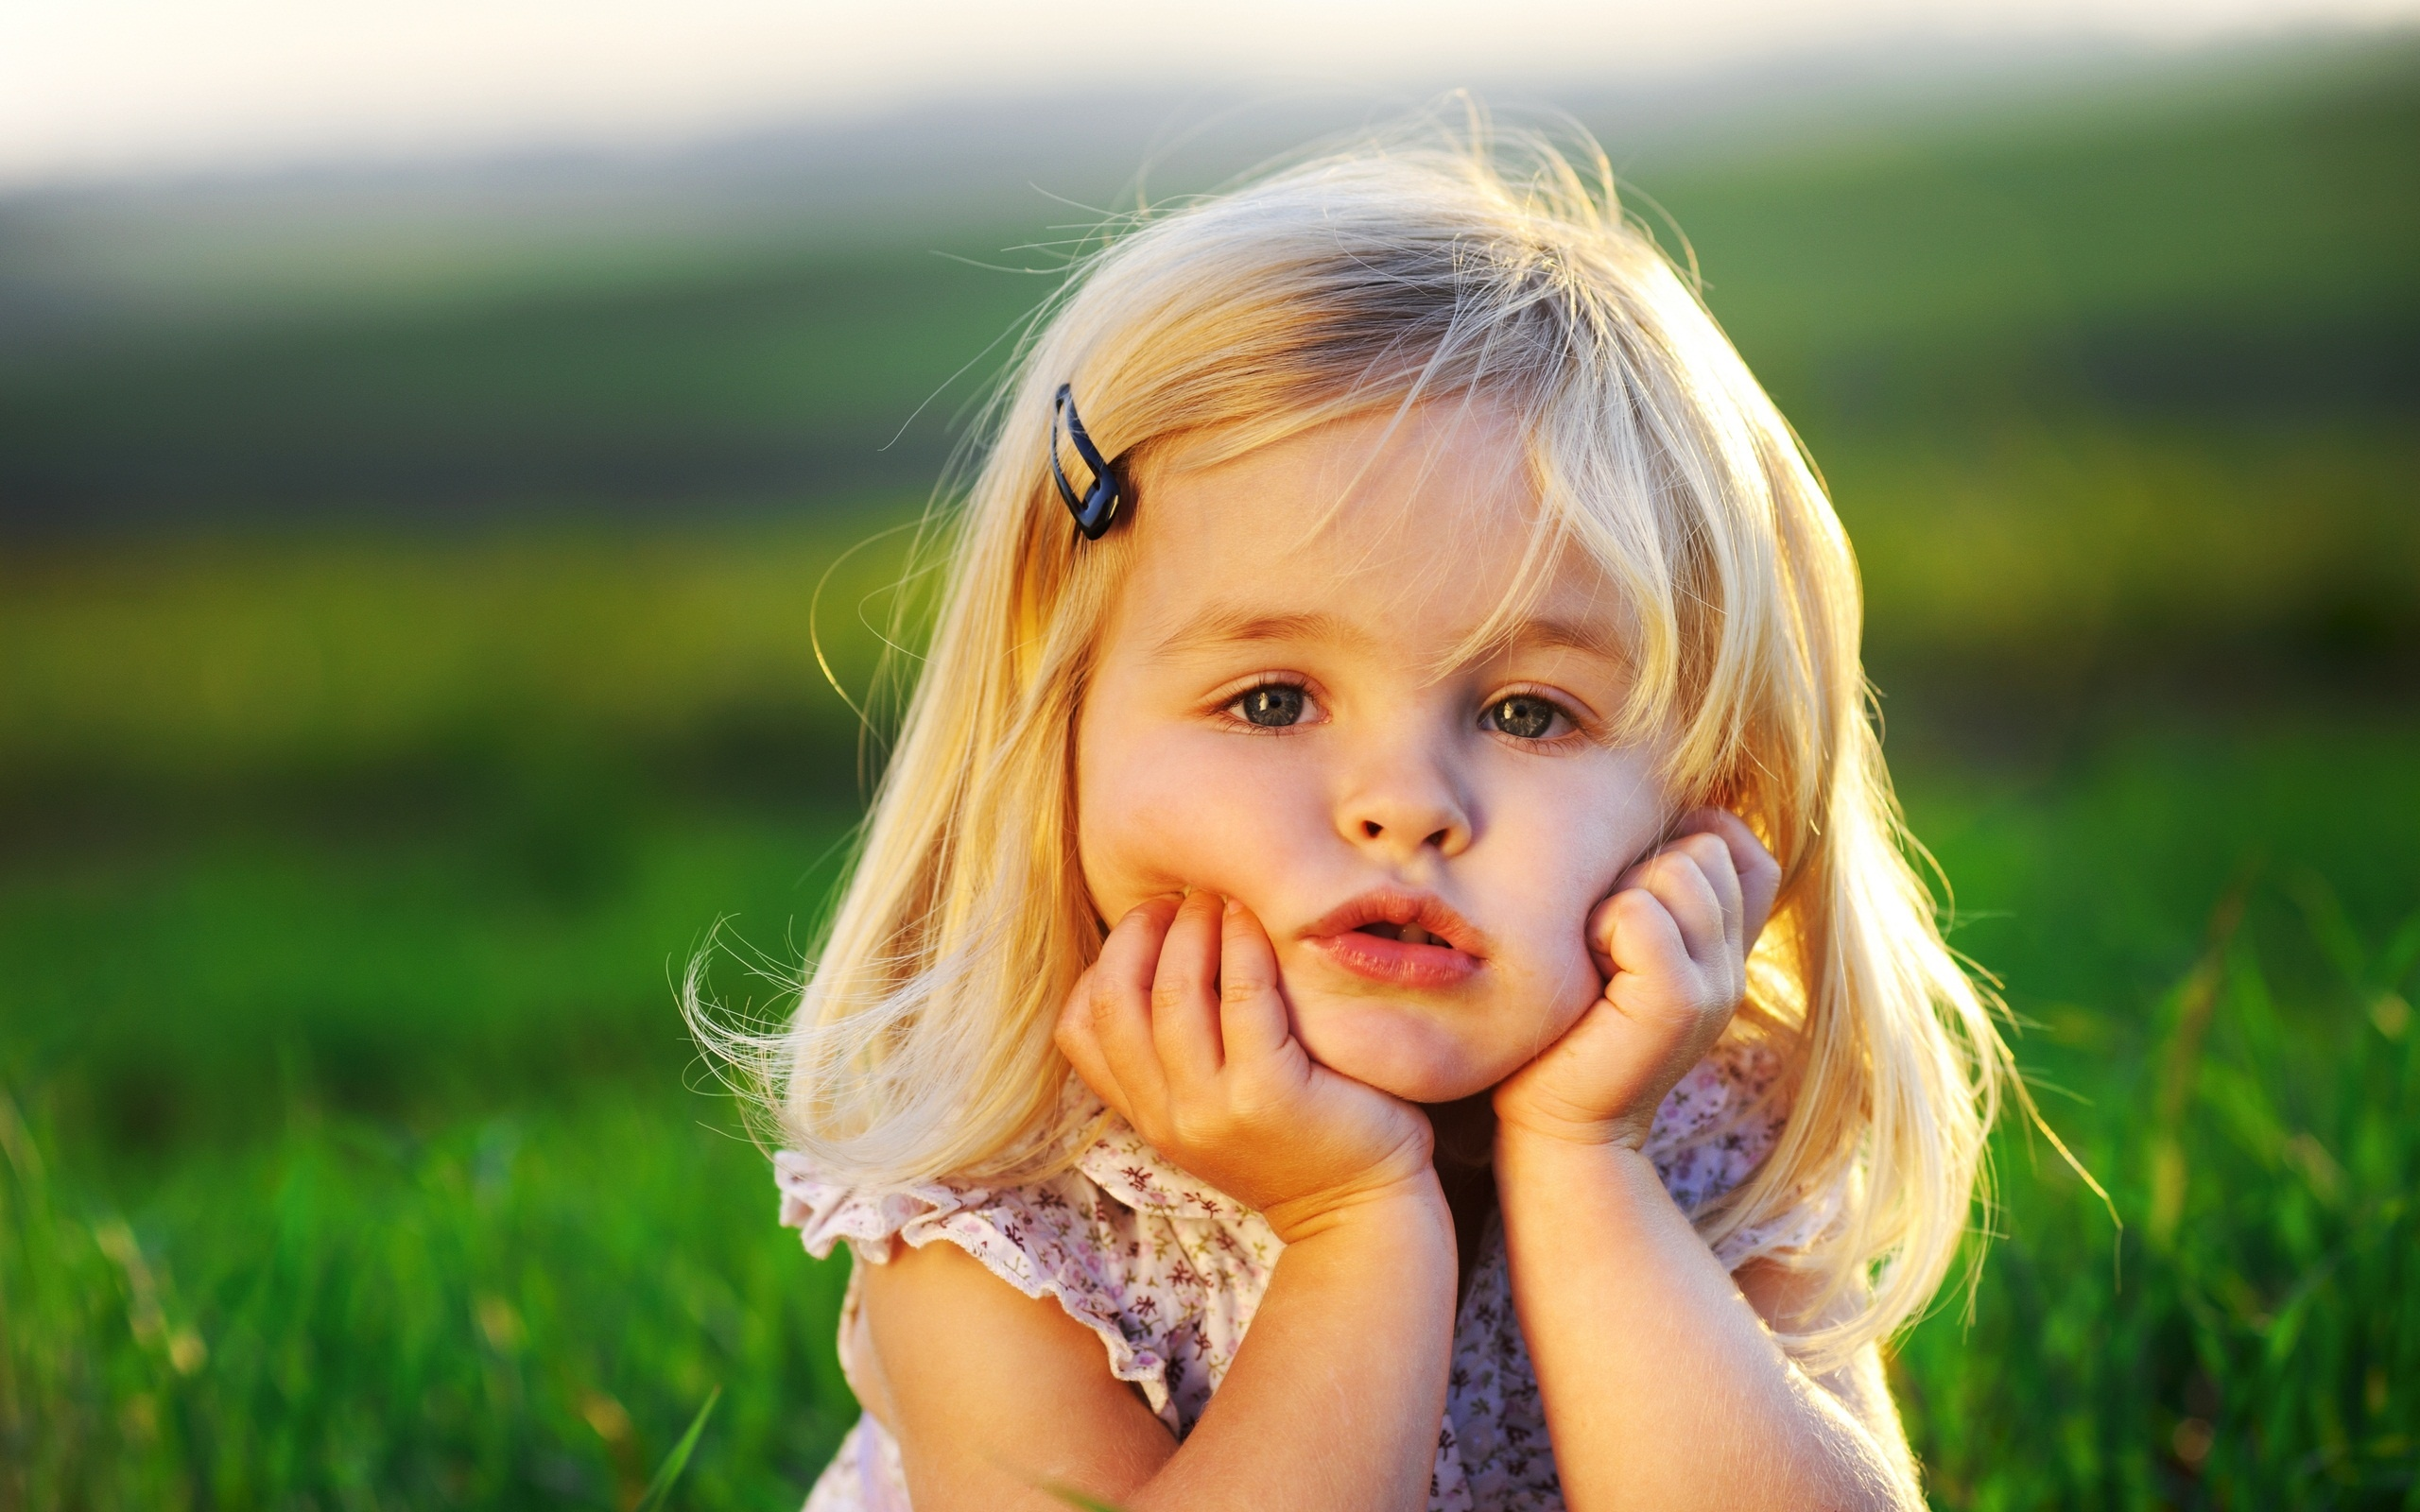 Cute Little Girl Wallpaper